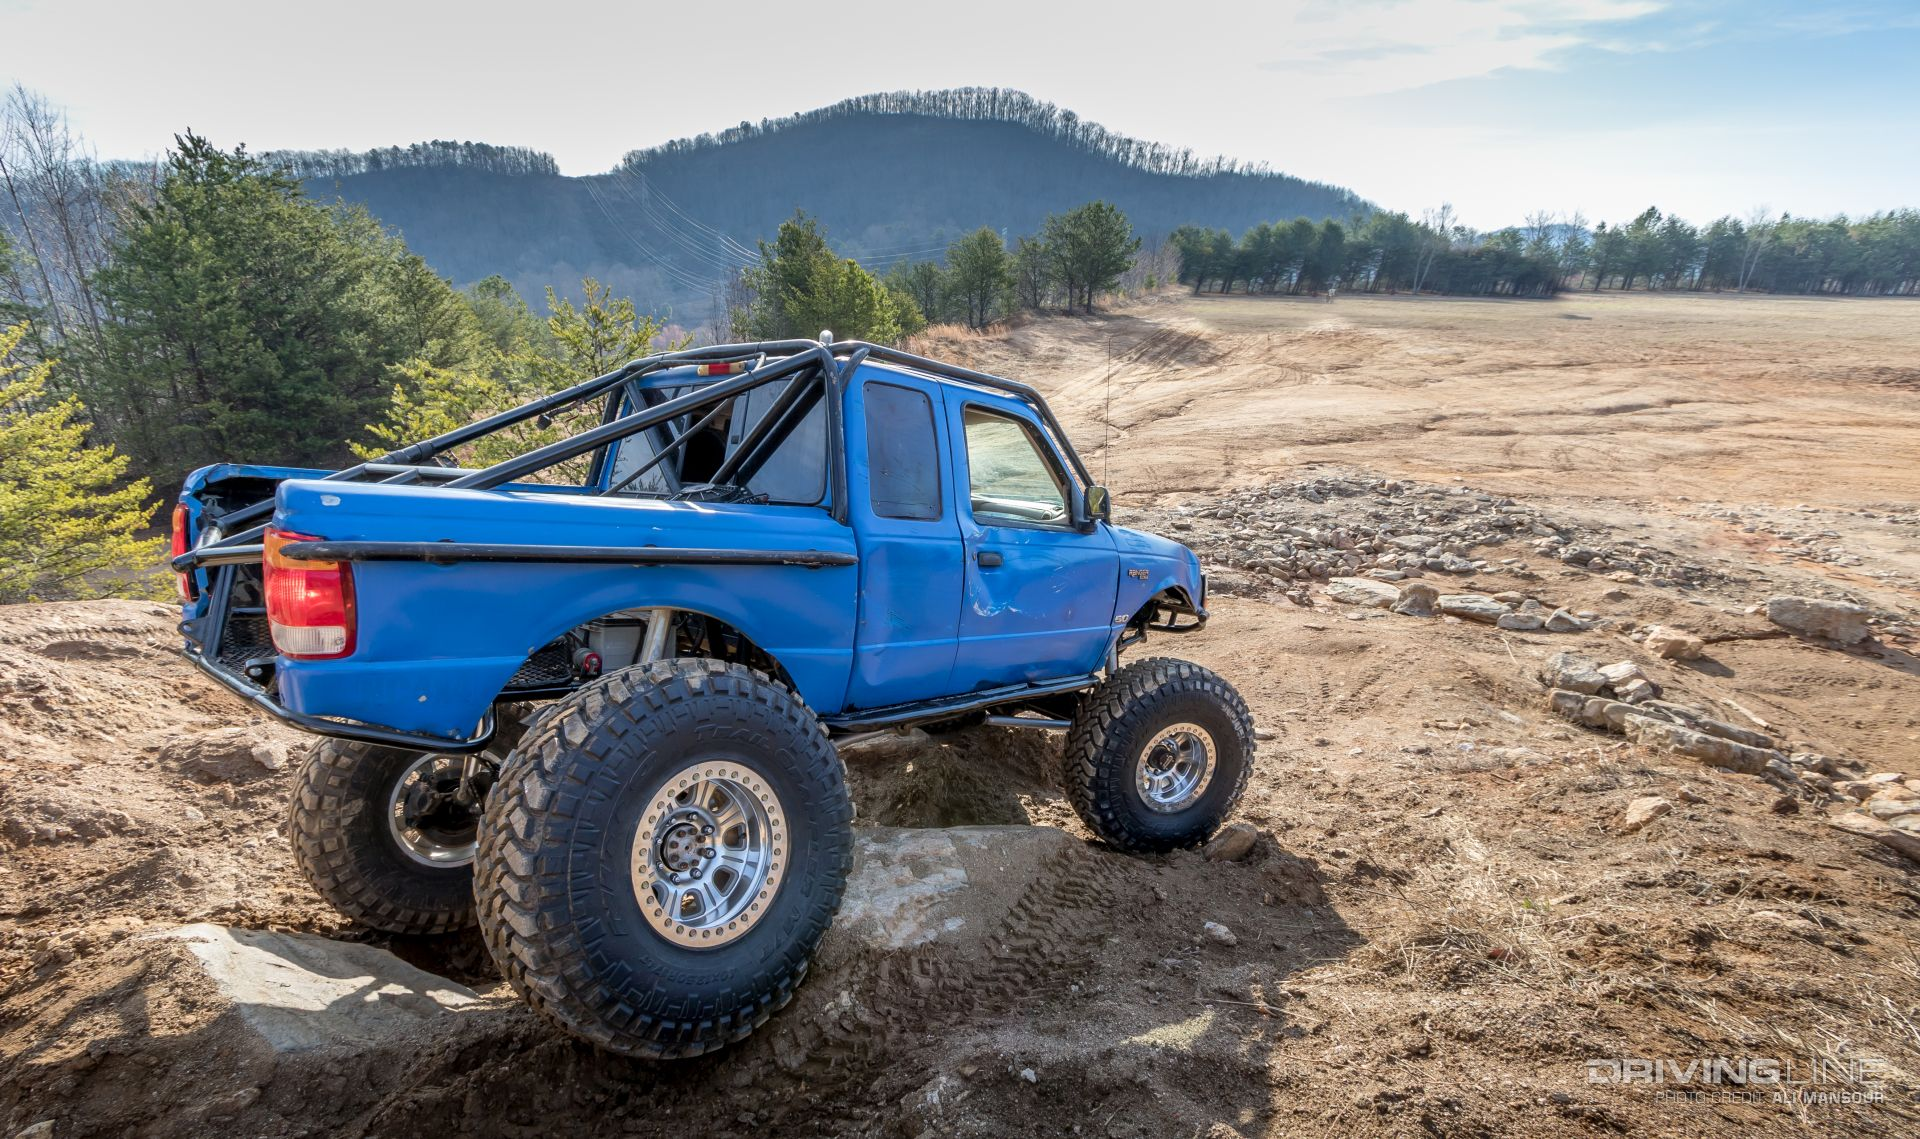 Carolina Axle and 4x4's 1999 Ford Ranger | DrivingLine